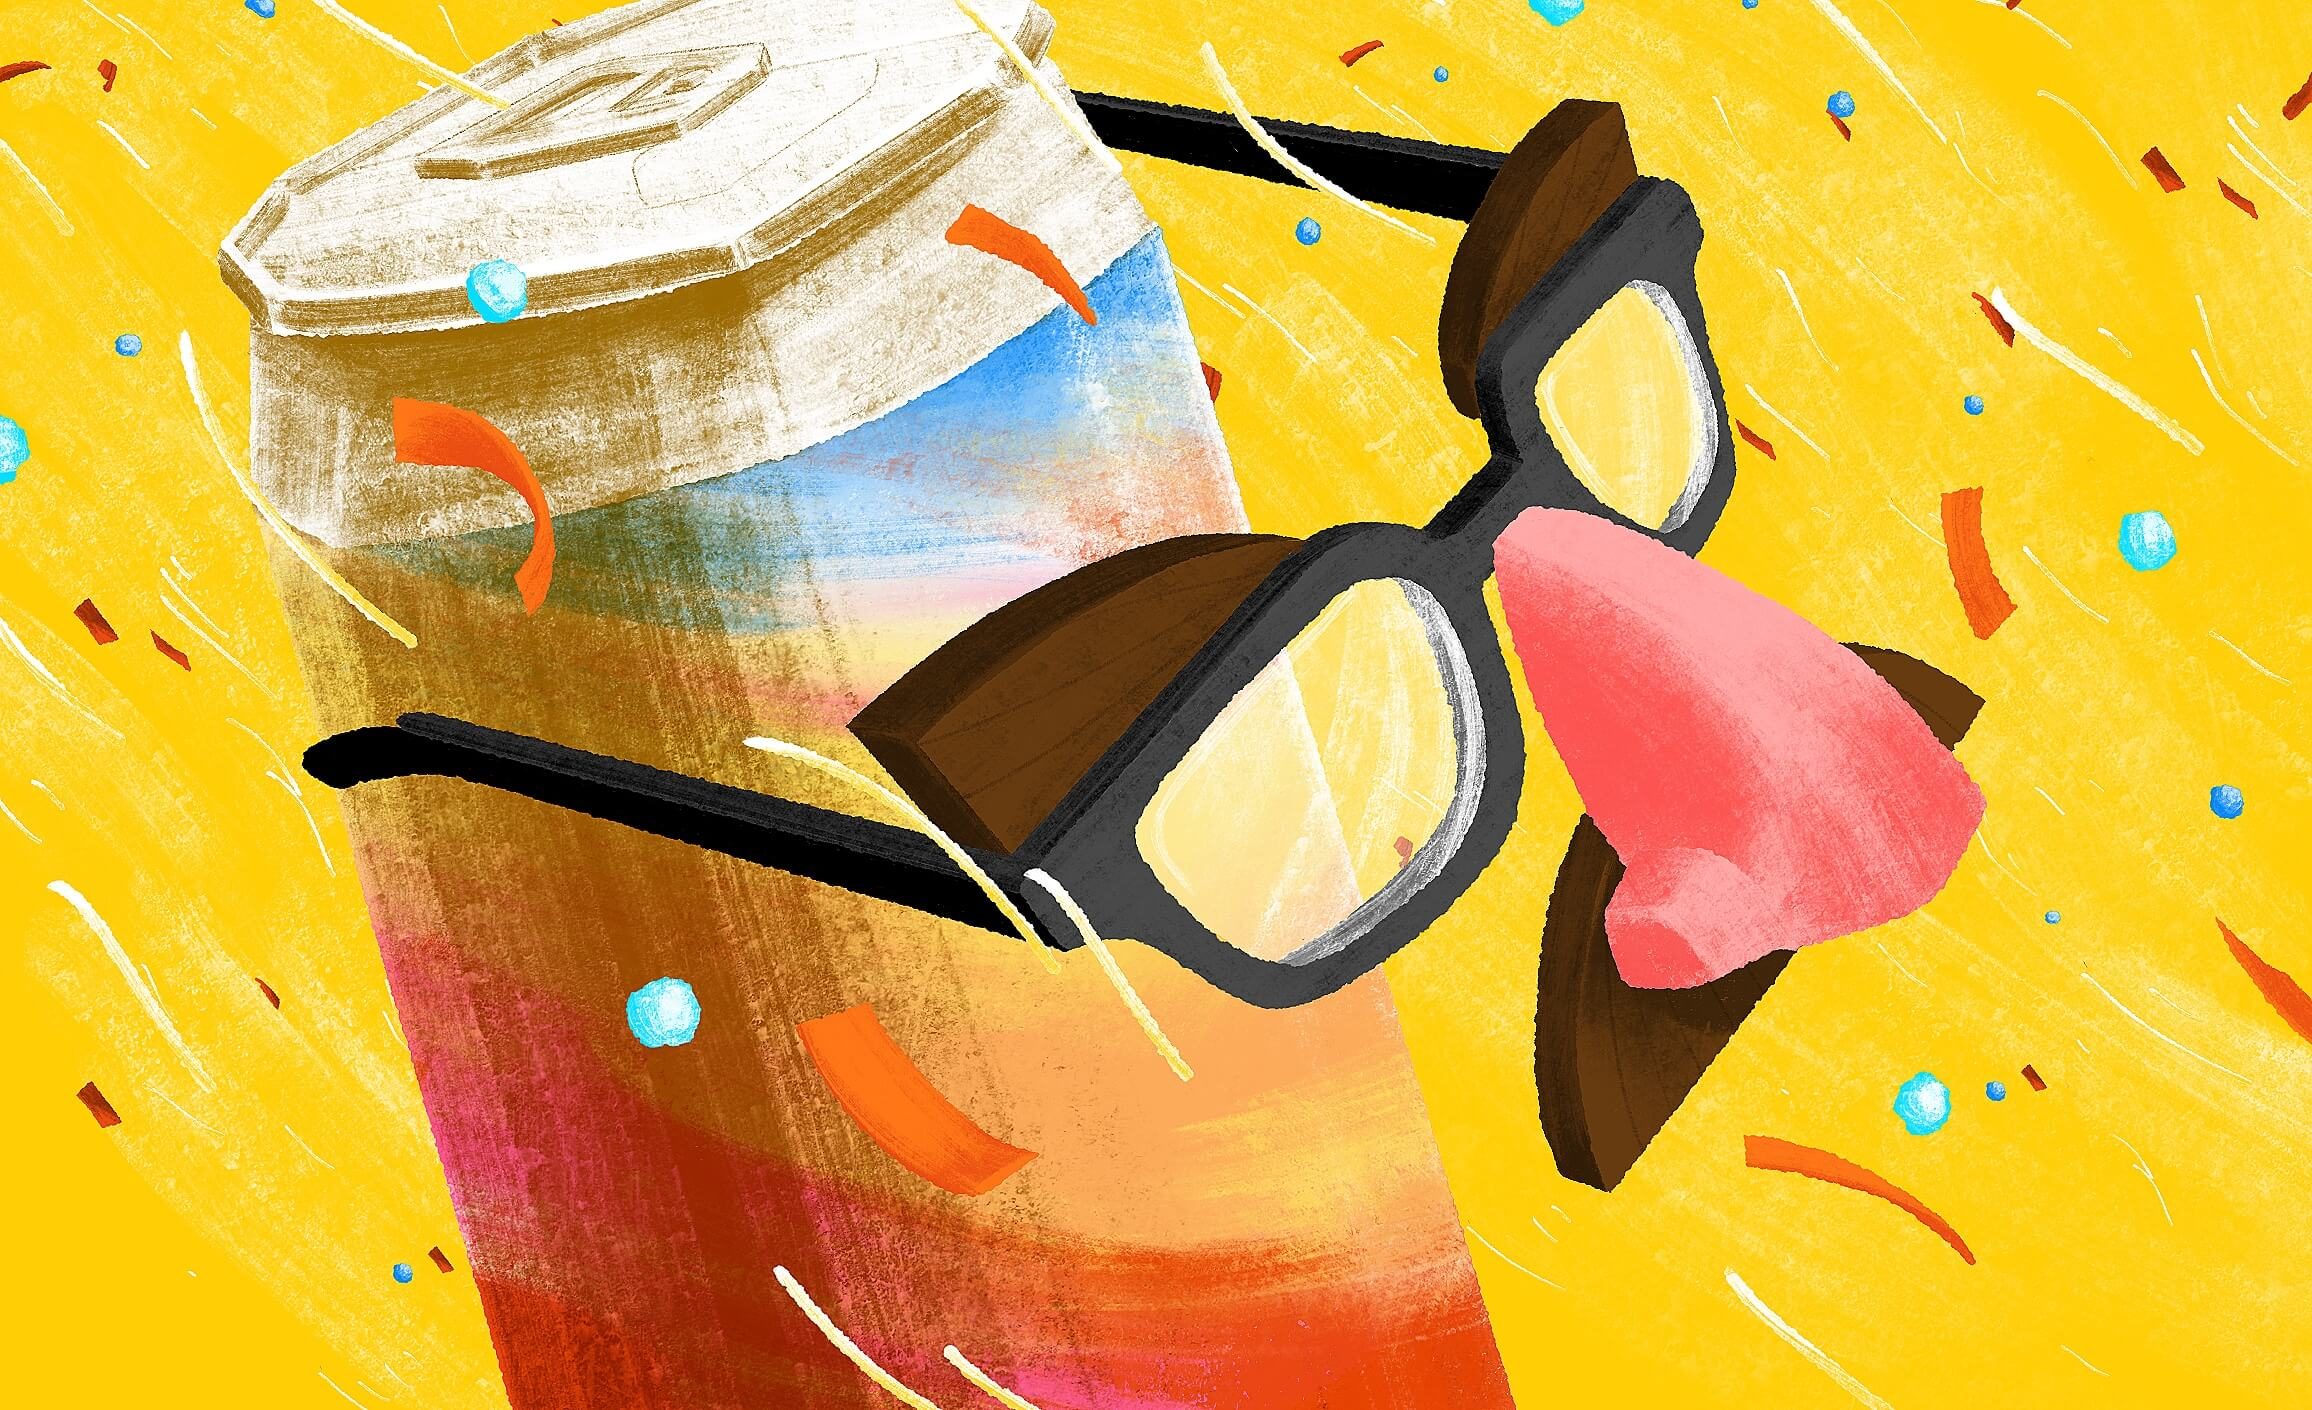 A Brief History of Sneaking Booze Into Music Festivals